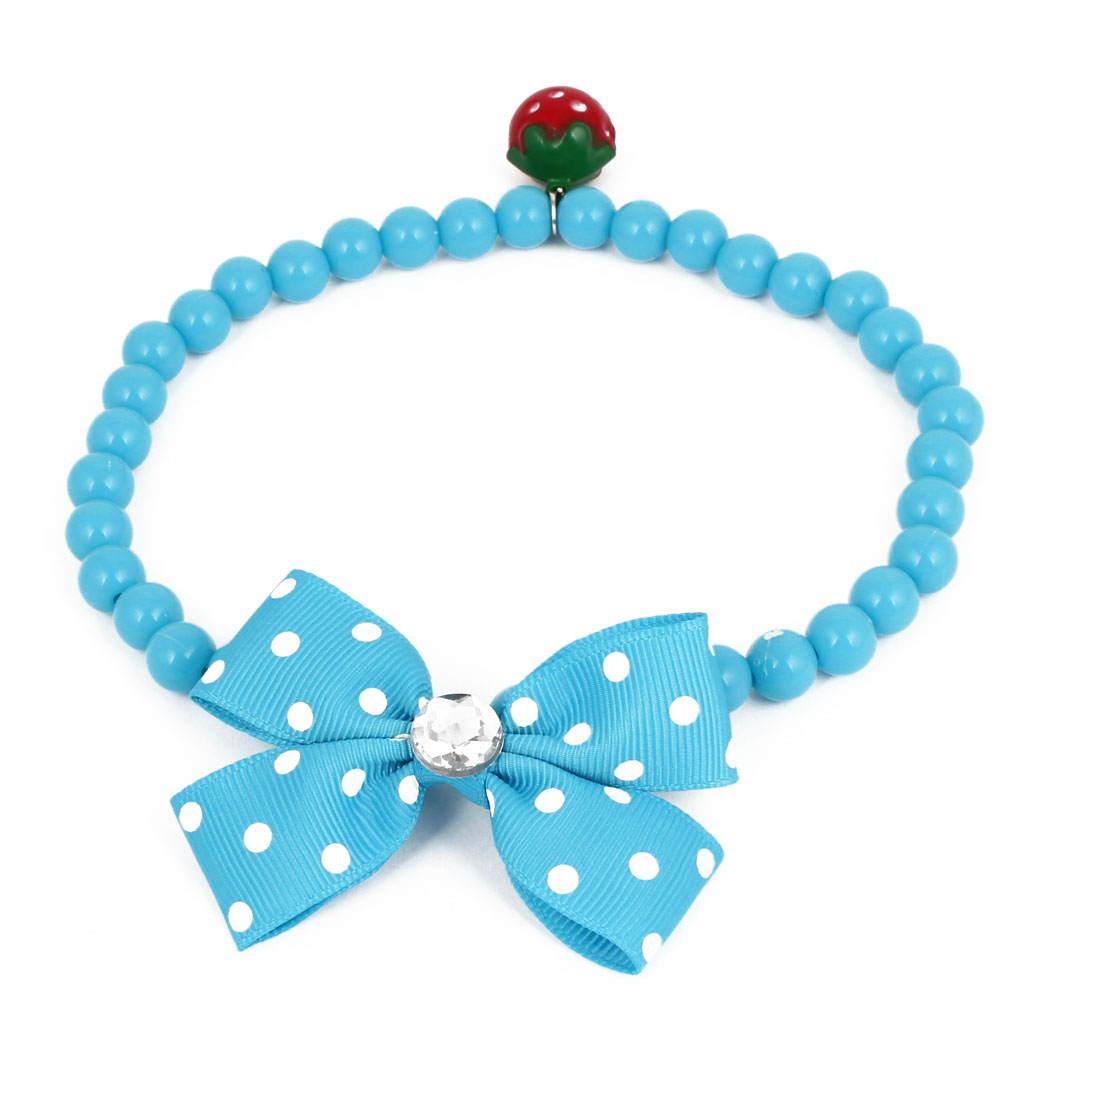 Metal Bell Pendant Bowtie Accent Pet Dog Plastic Round Beads Collar Necklace Blue L